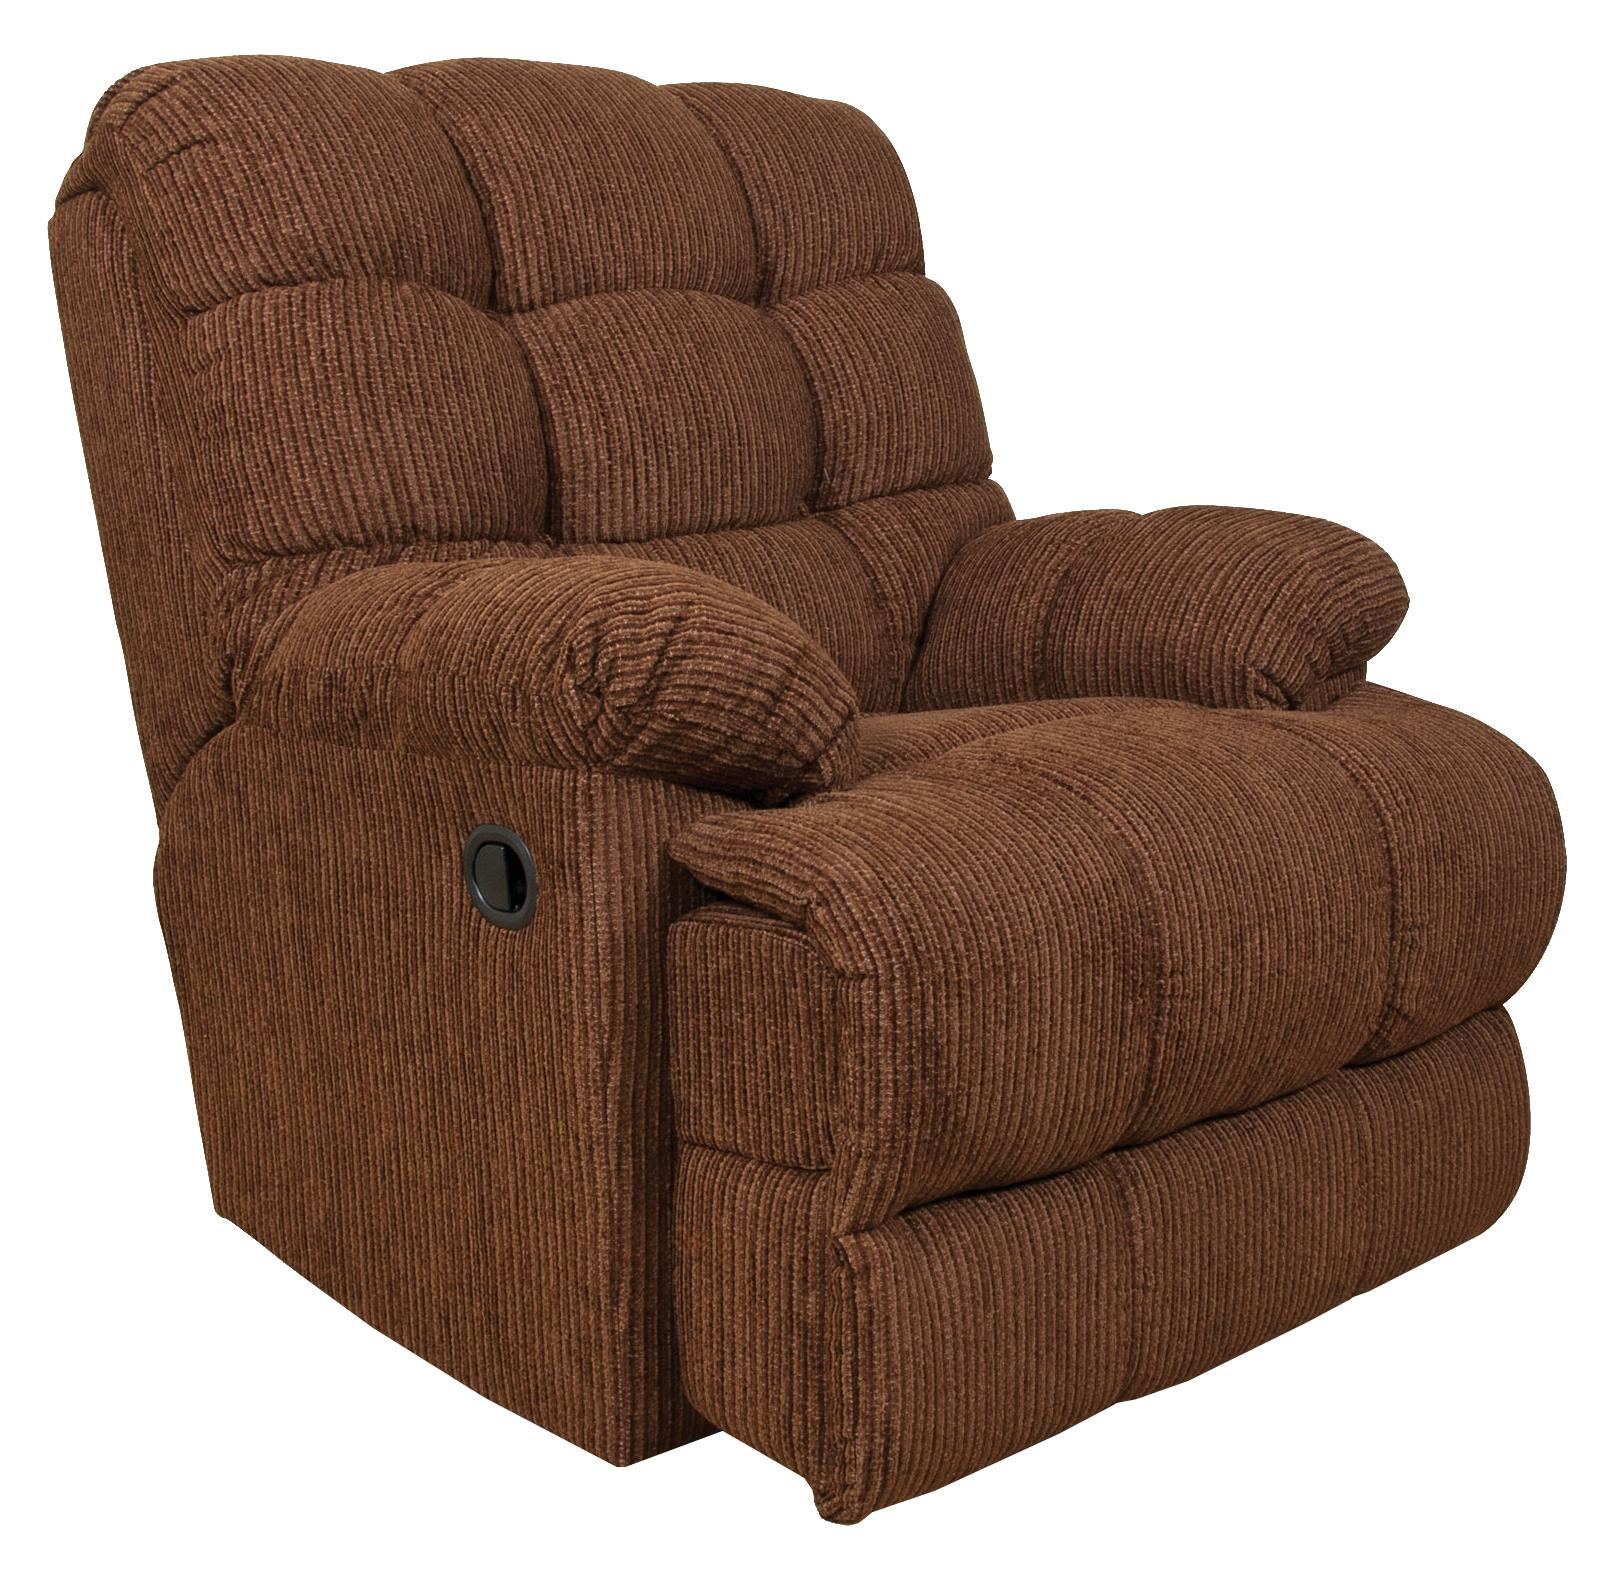 England 5610 Miles Swivel Gliding Recliner - Item Number: 5610-70